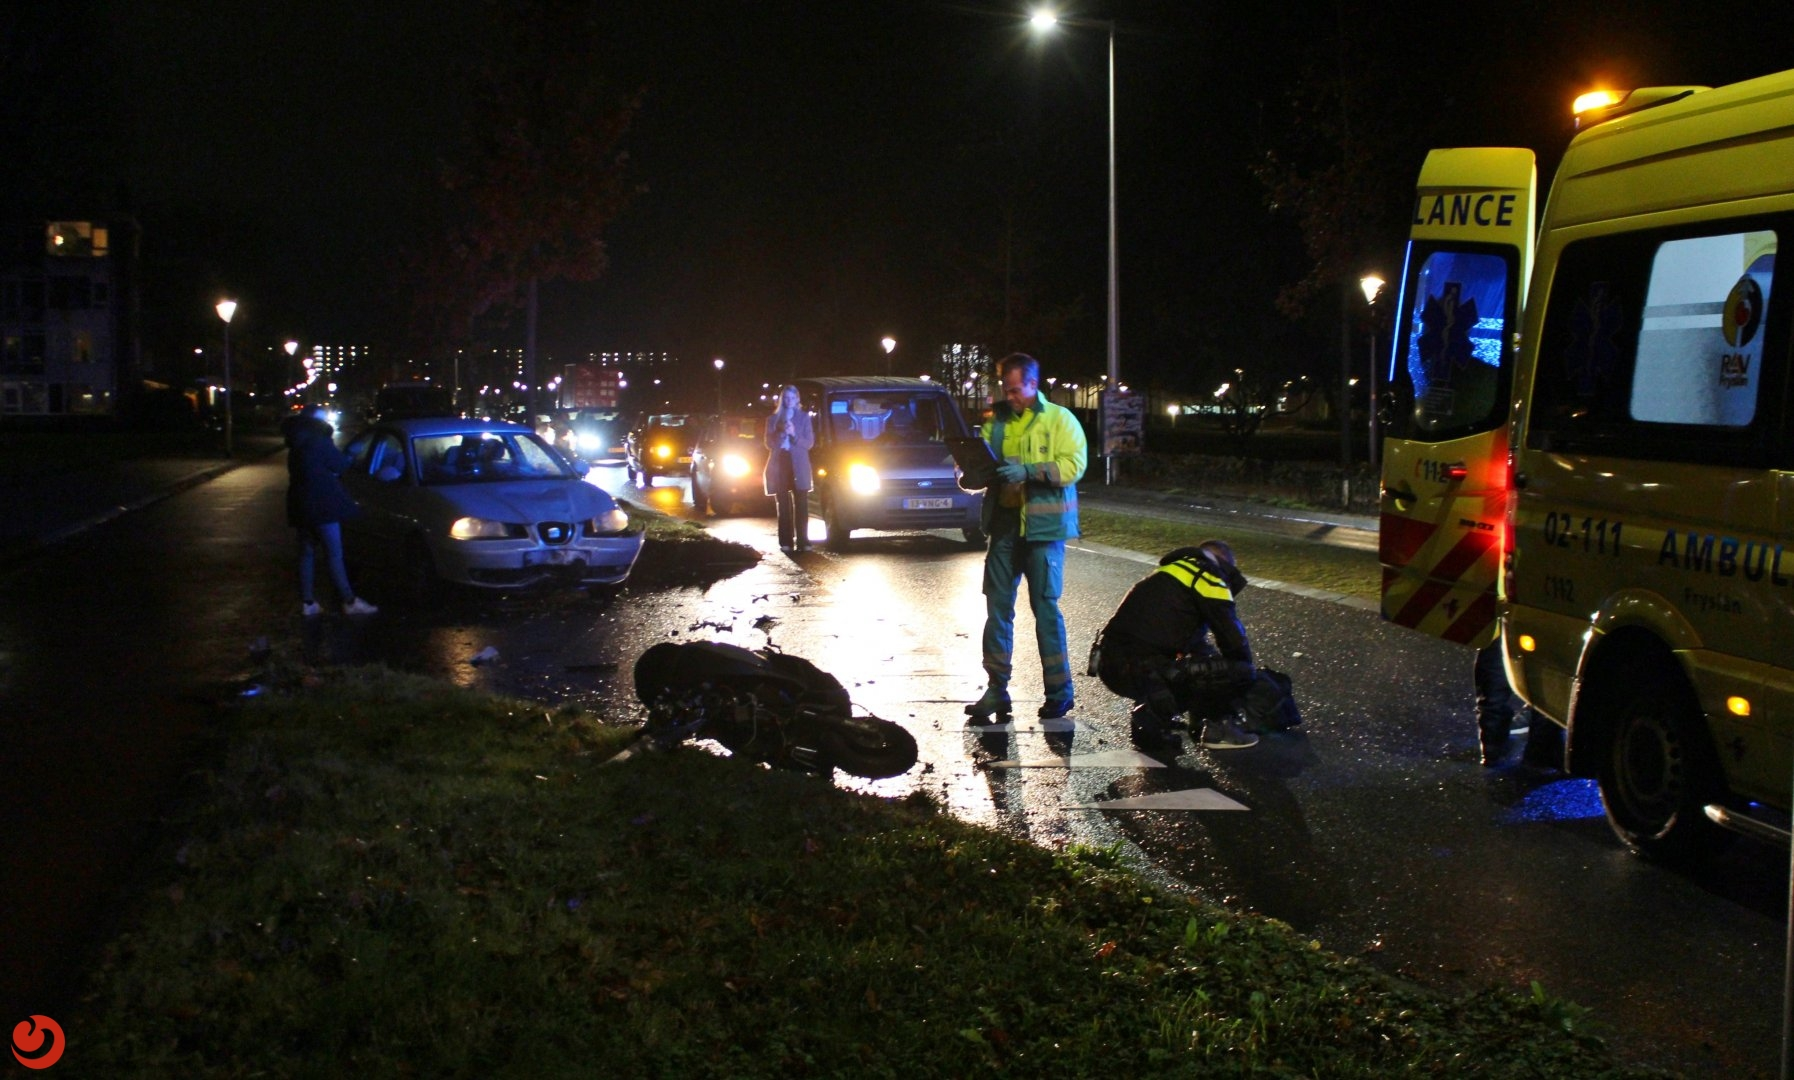 Snorscooter botst frontaal op auto